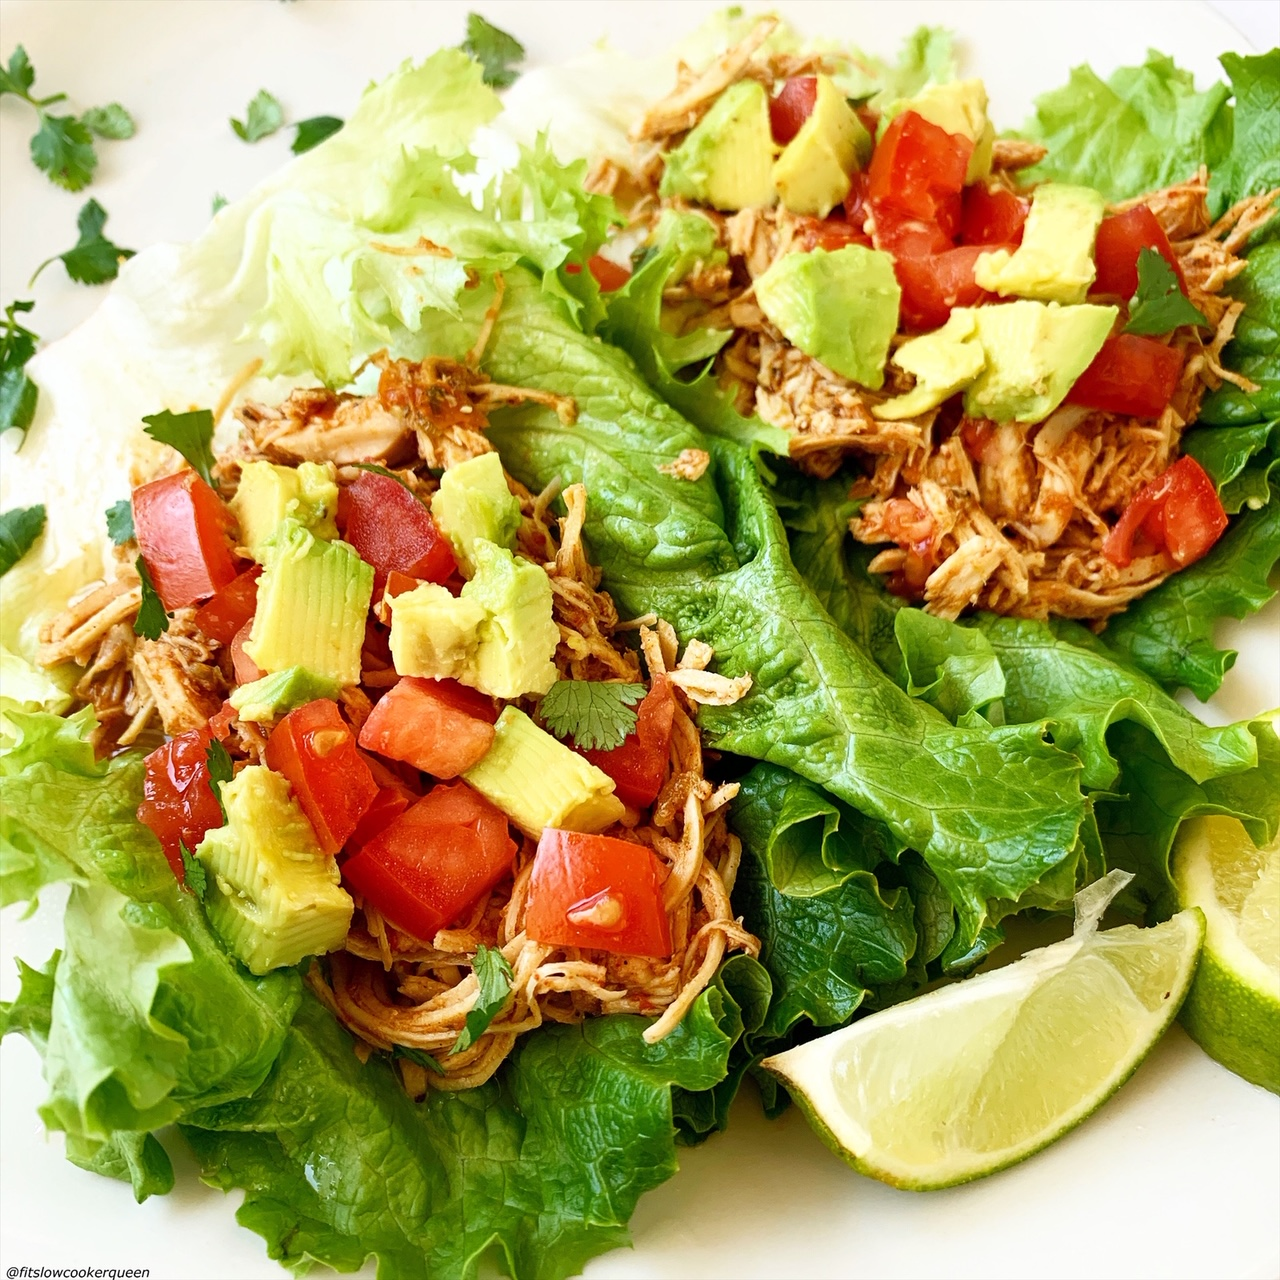 chicken tacos in a lettuce wrap topped with tomatoes, avocado, and lettuce